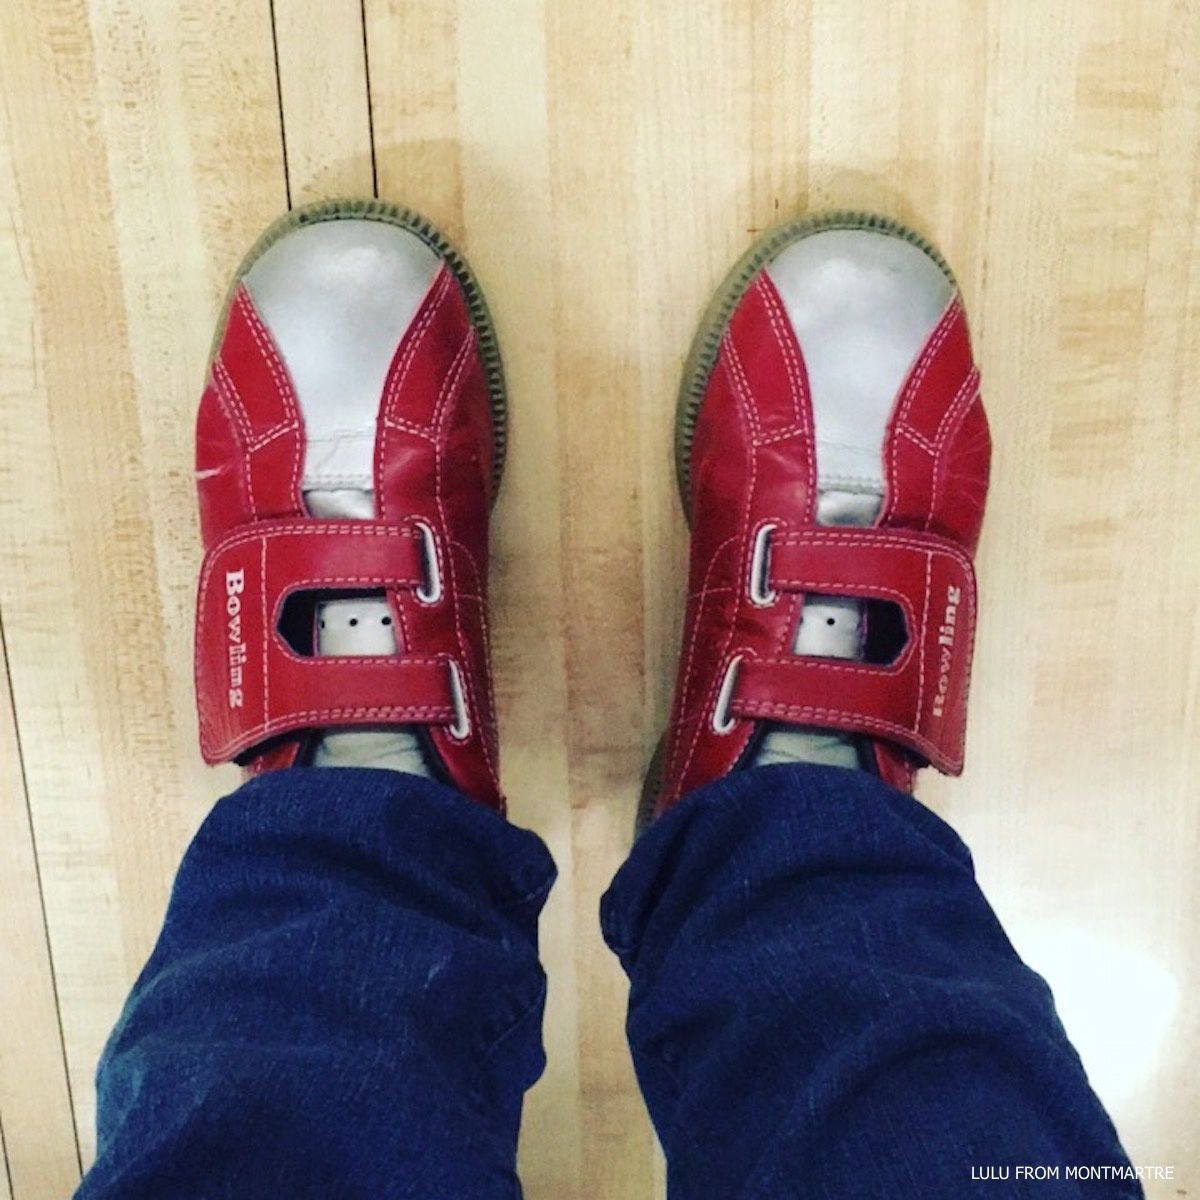 08. Bowling shoes